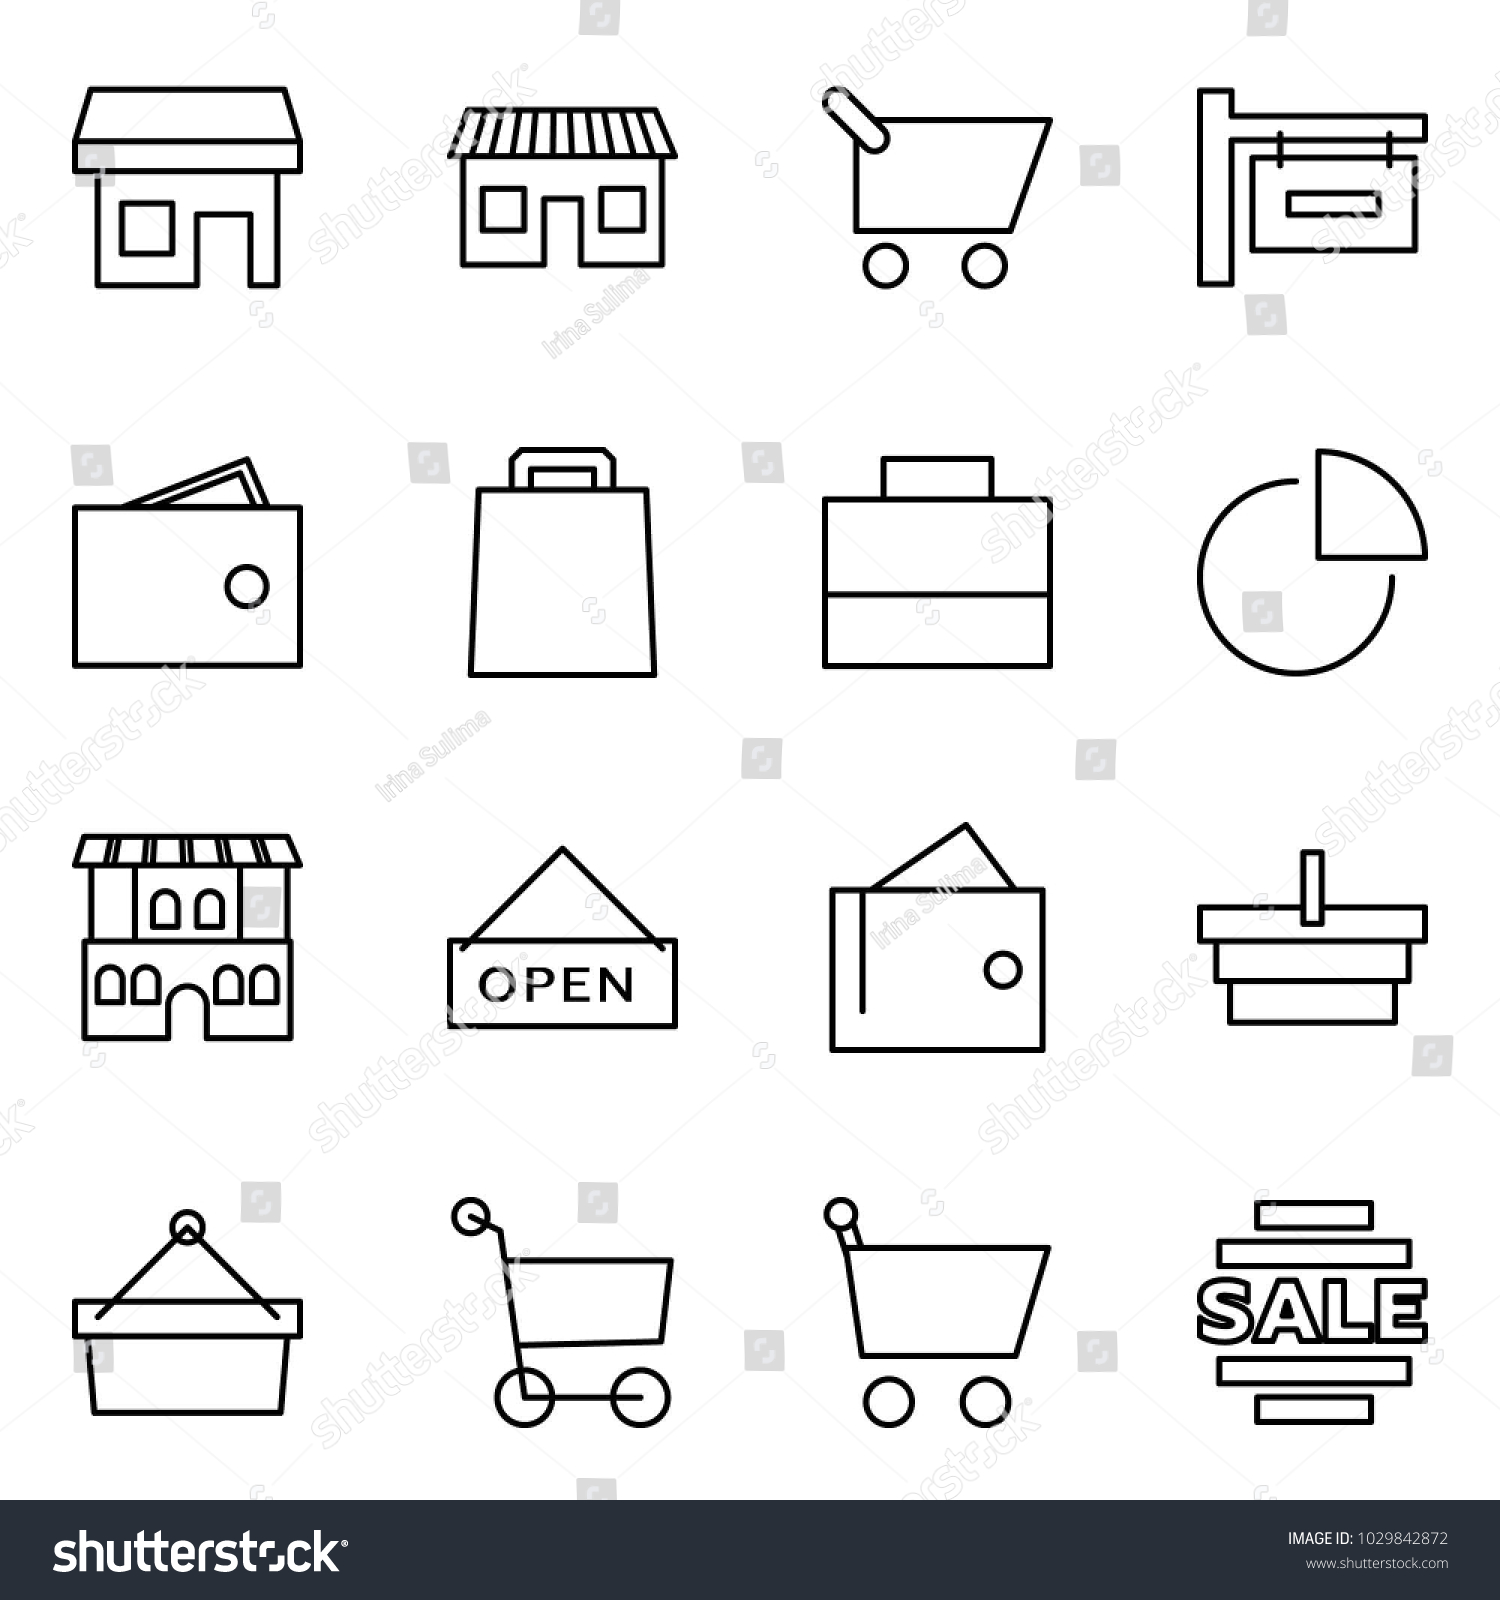 Flat Vector Icon Set Store Stock Royalty Free Shopping Cart Diagram Shop Sign Wallet